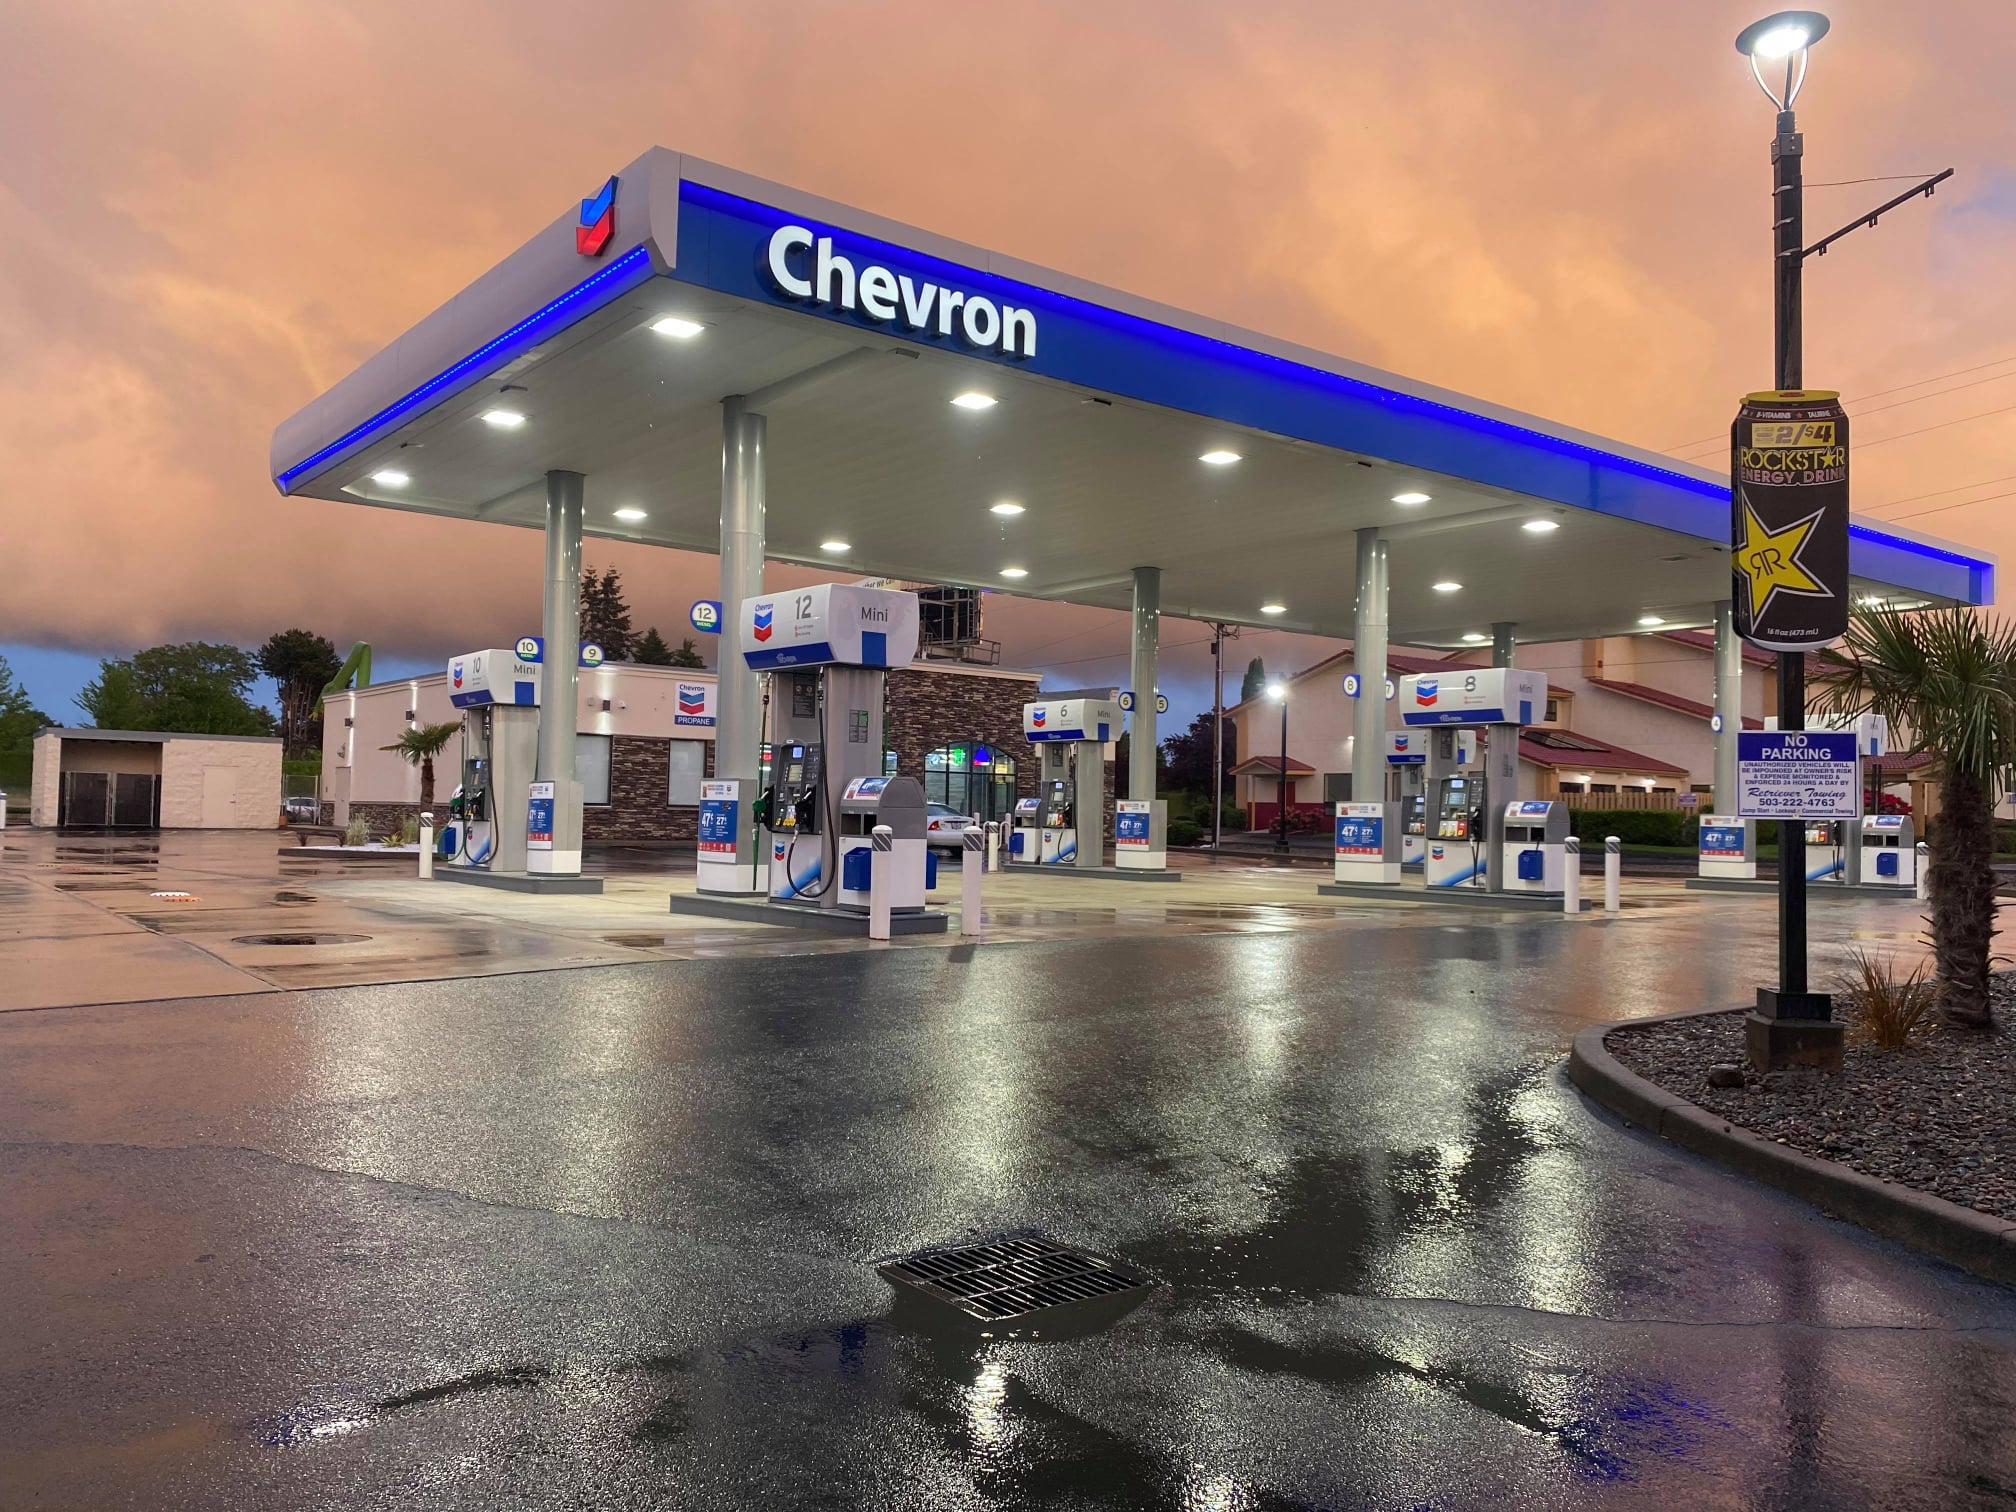 2021 Update: Chevron Salem Goes Nearly Touchless at The Pump in During Covid-19 Pandemic